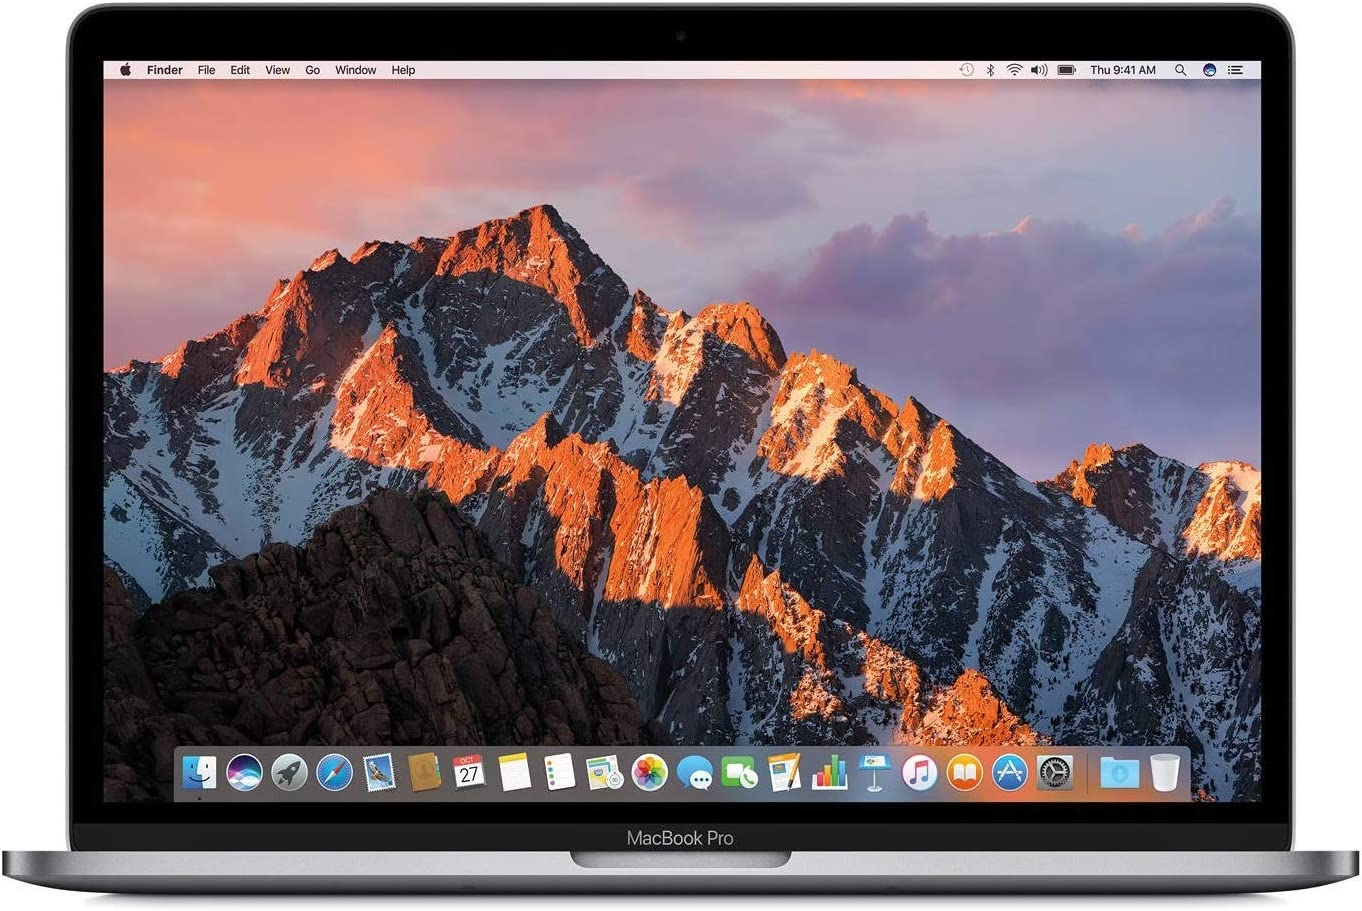 Apple 13in MacBook Pro, Retina Display, 2.3GHz Intel Core i5 Dual Core, 8GB RAM, 128GB SSD, Space Grey, MPXQ2LL/A (Renewed)